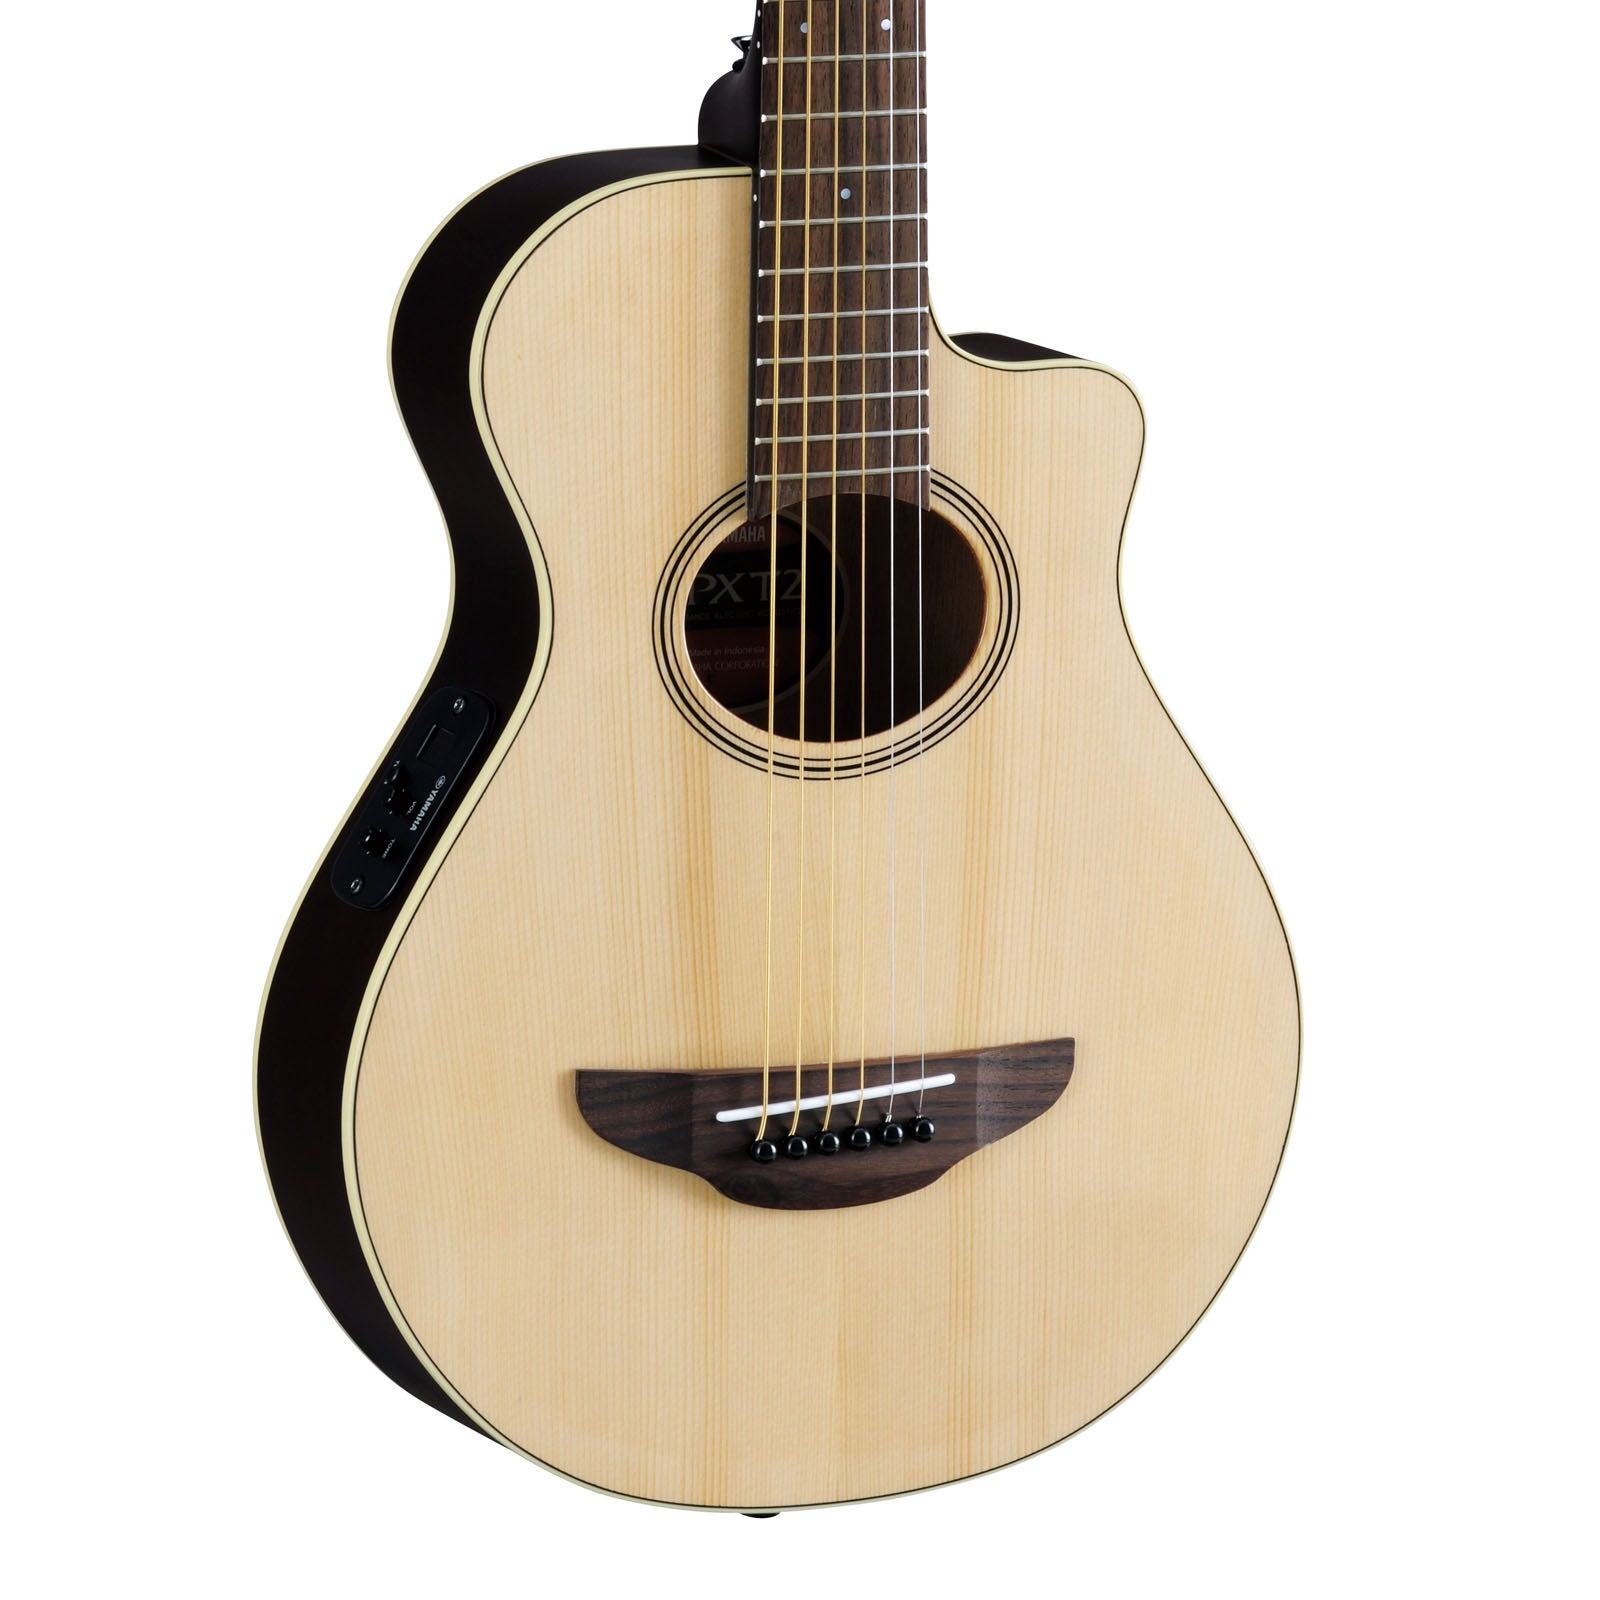 Yamaha Guitars Apxt2 Na Natural 34 Size Acoustic Electric Thinline Cutaway For Beginners Students Or Travel New